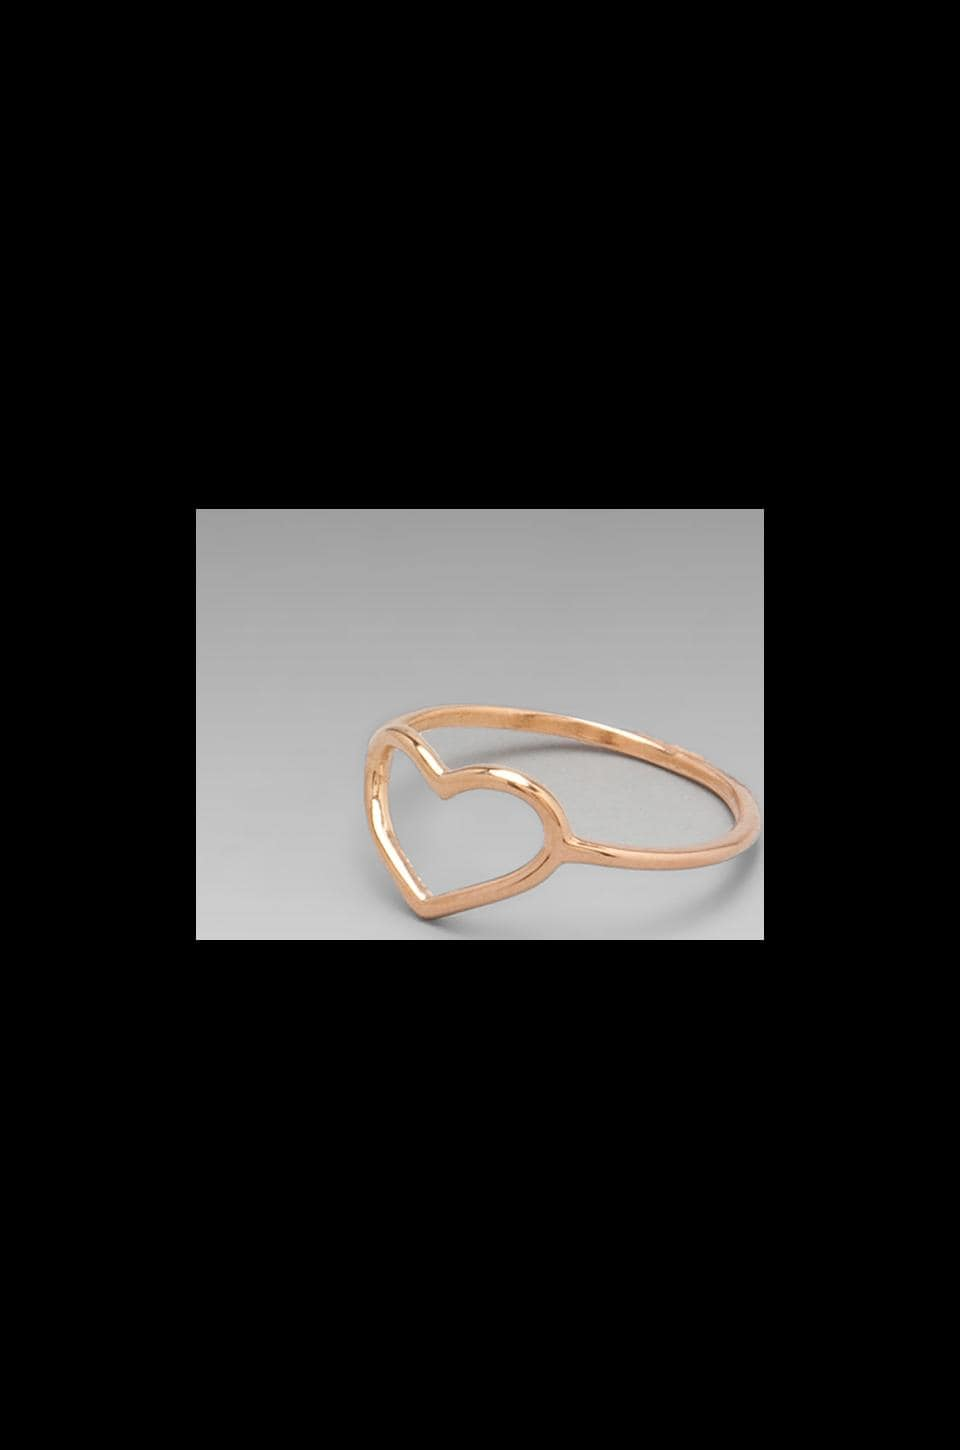 ANINE BING Heart Ring in Rose Gold